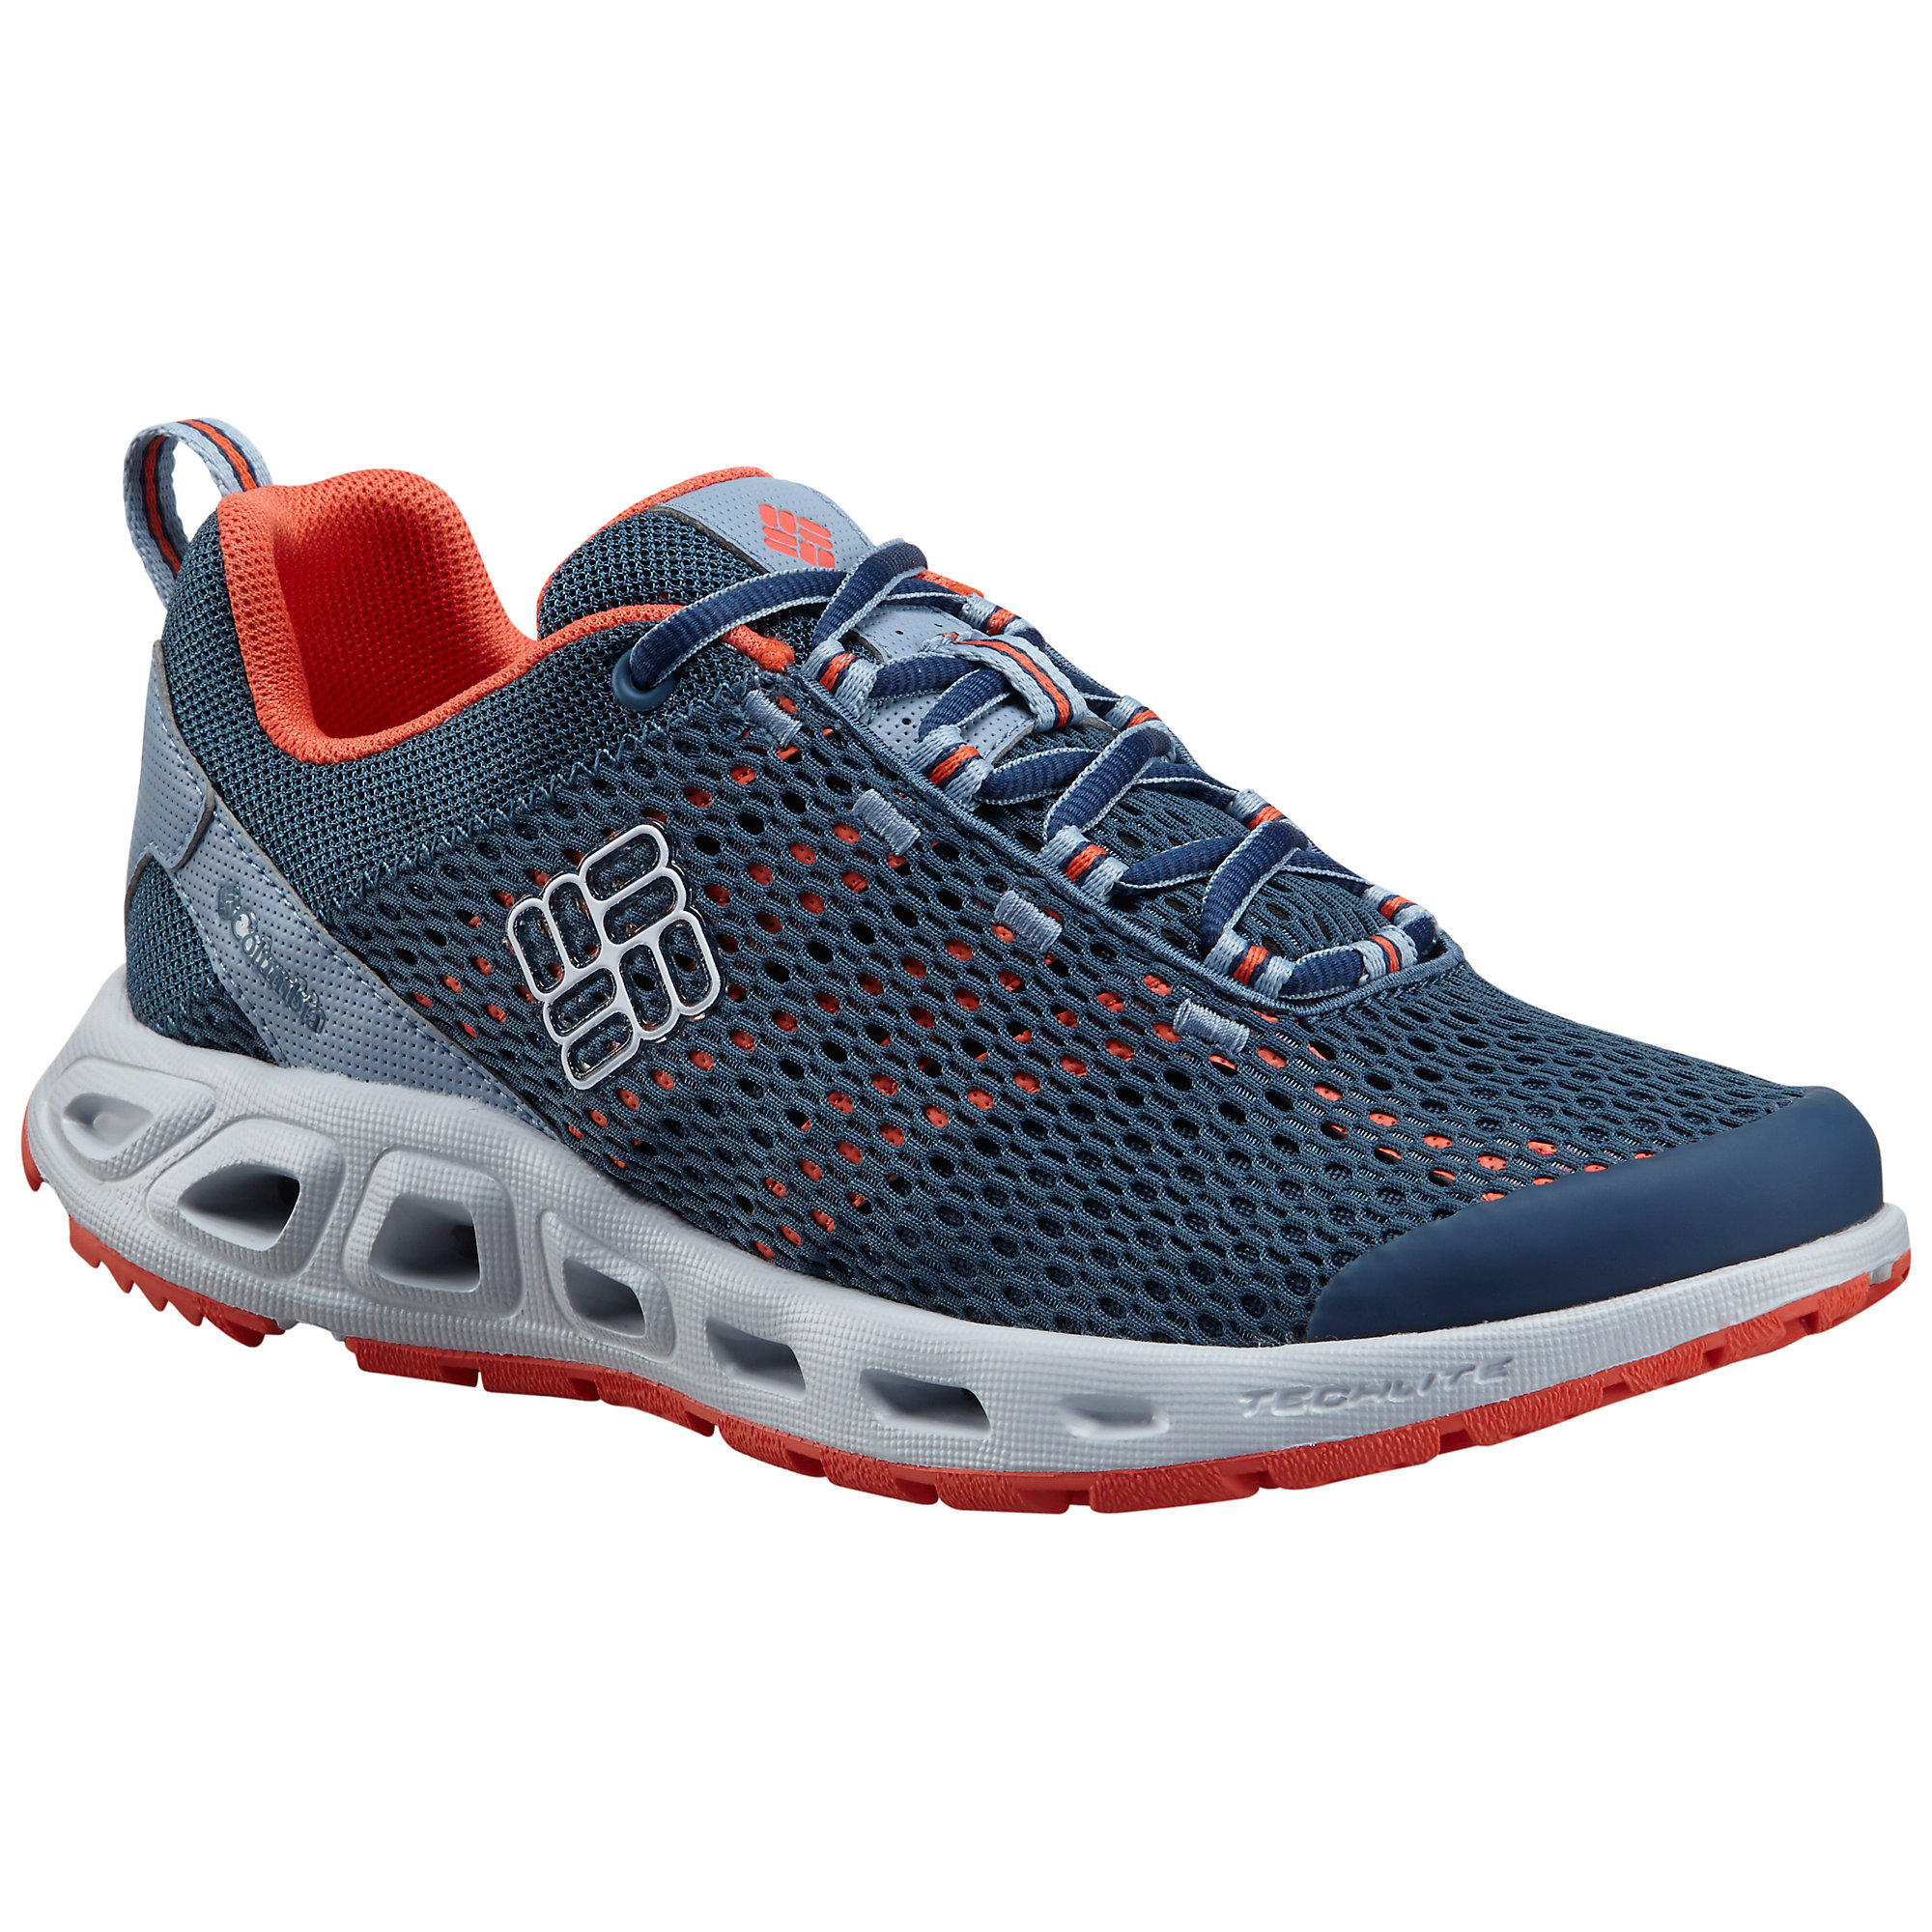 photo of a Columbia footwear product